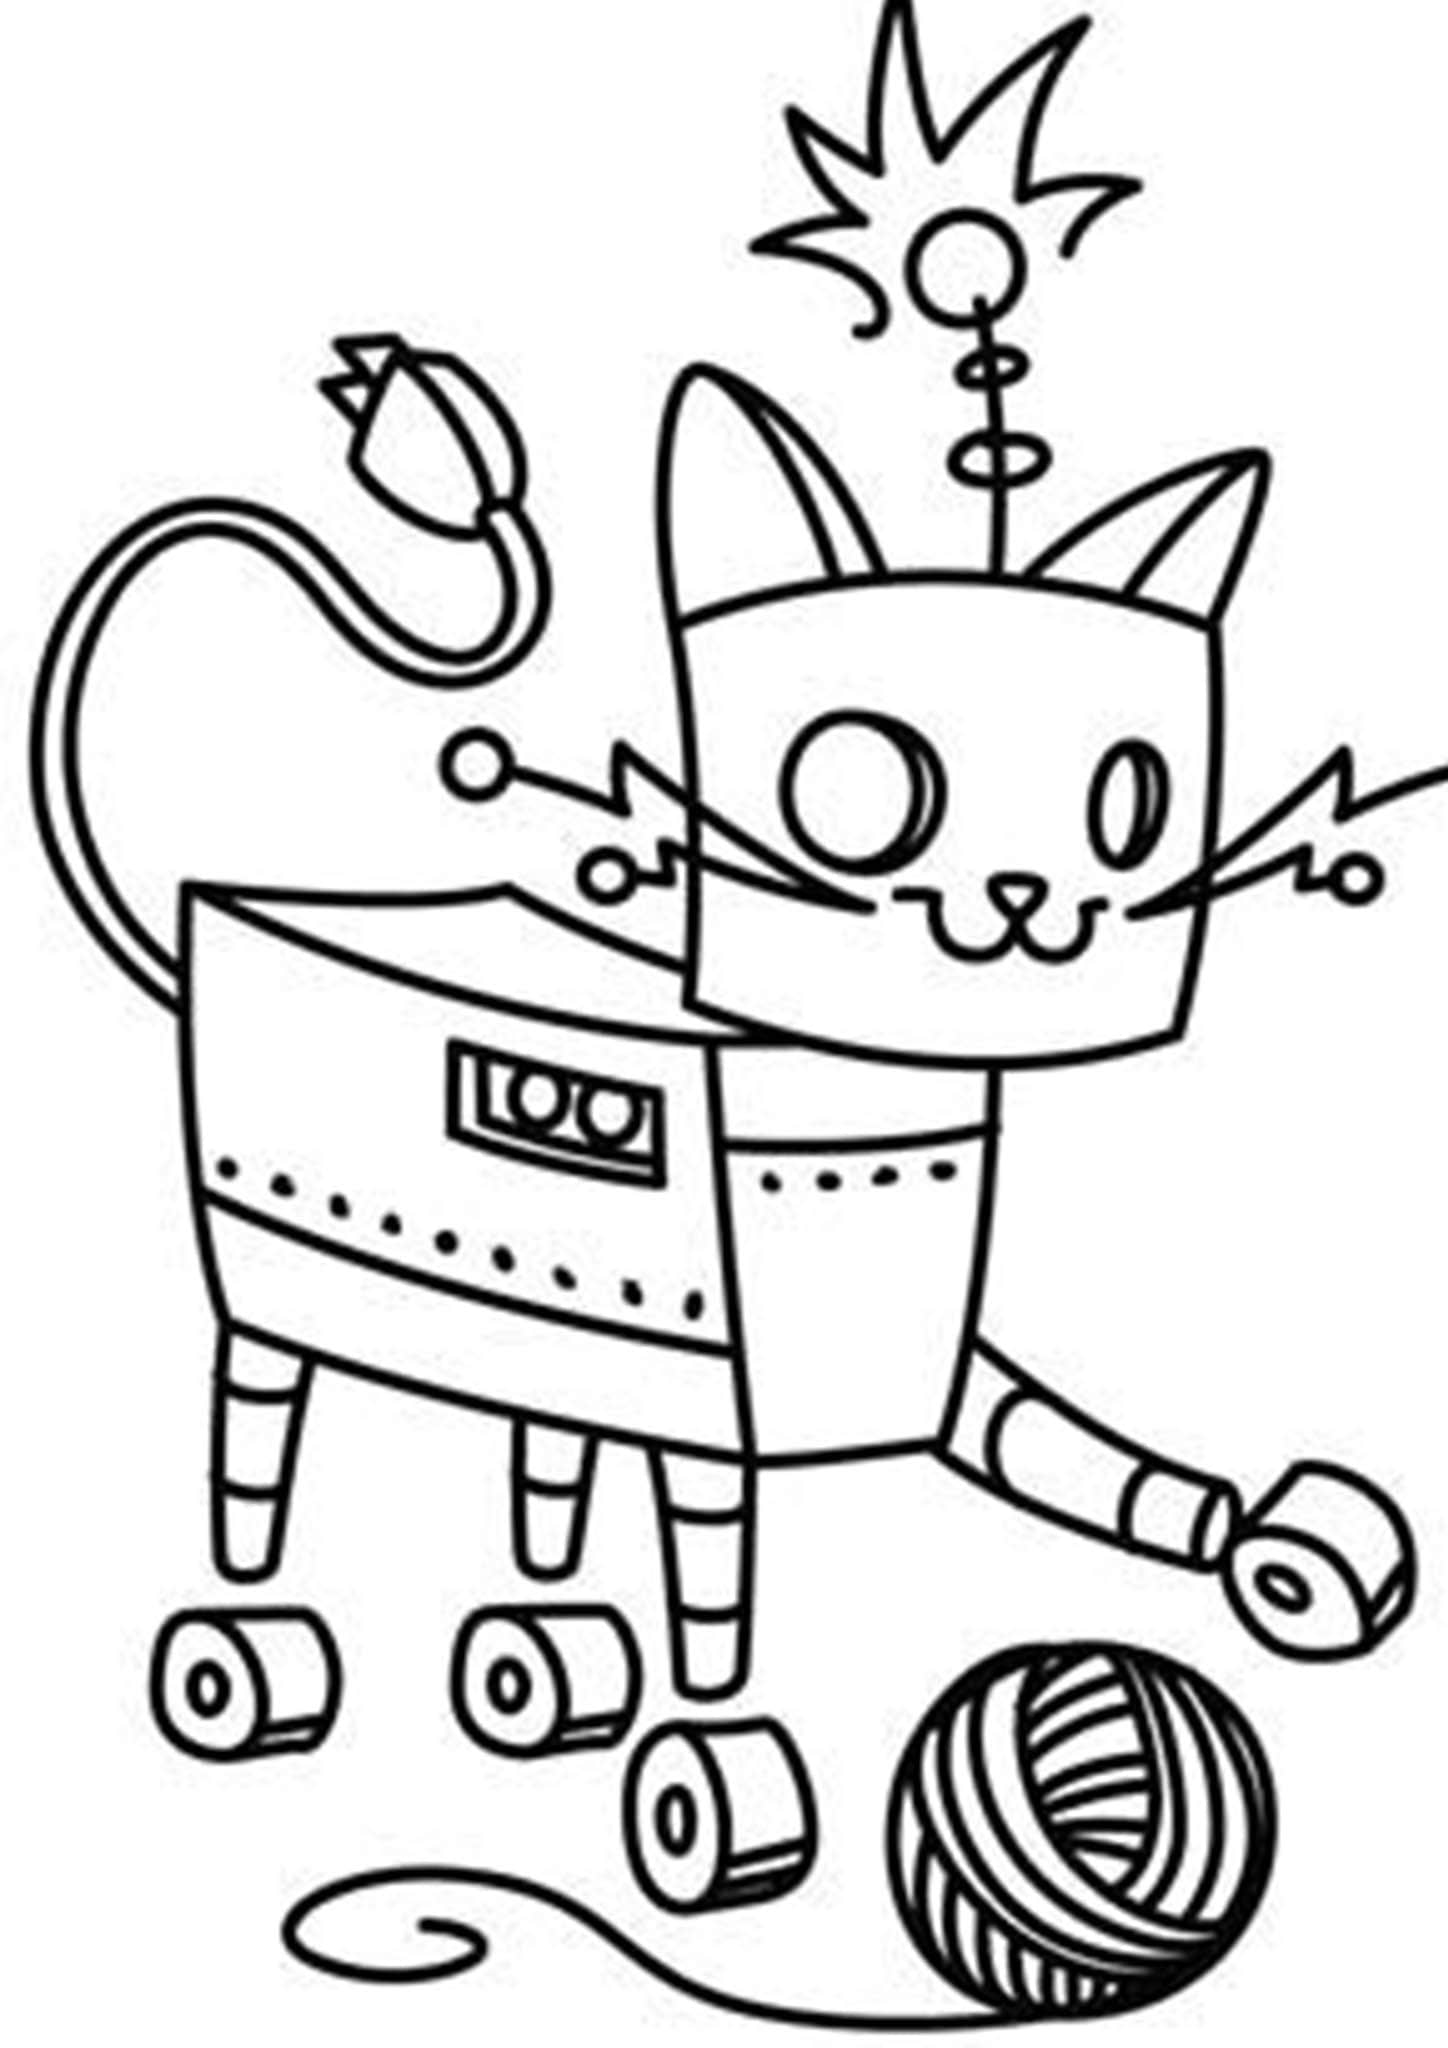 coloring sheet robot coloring pages robot coloring pages free printable coloring pages for sheet coloring coloring robot pages